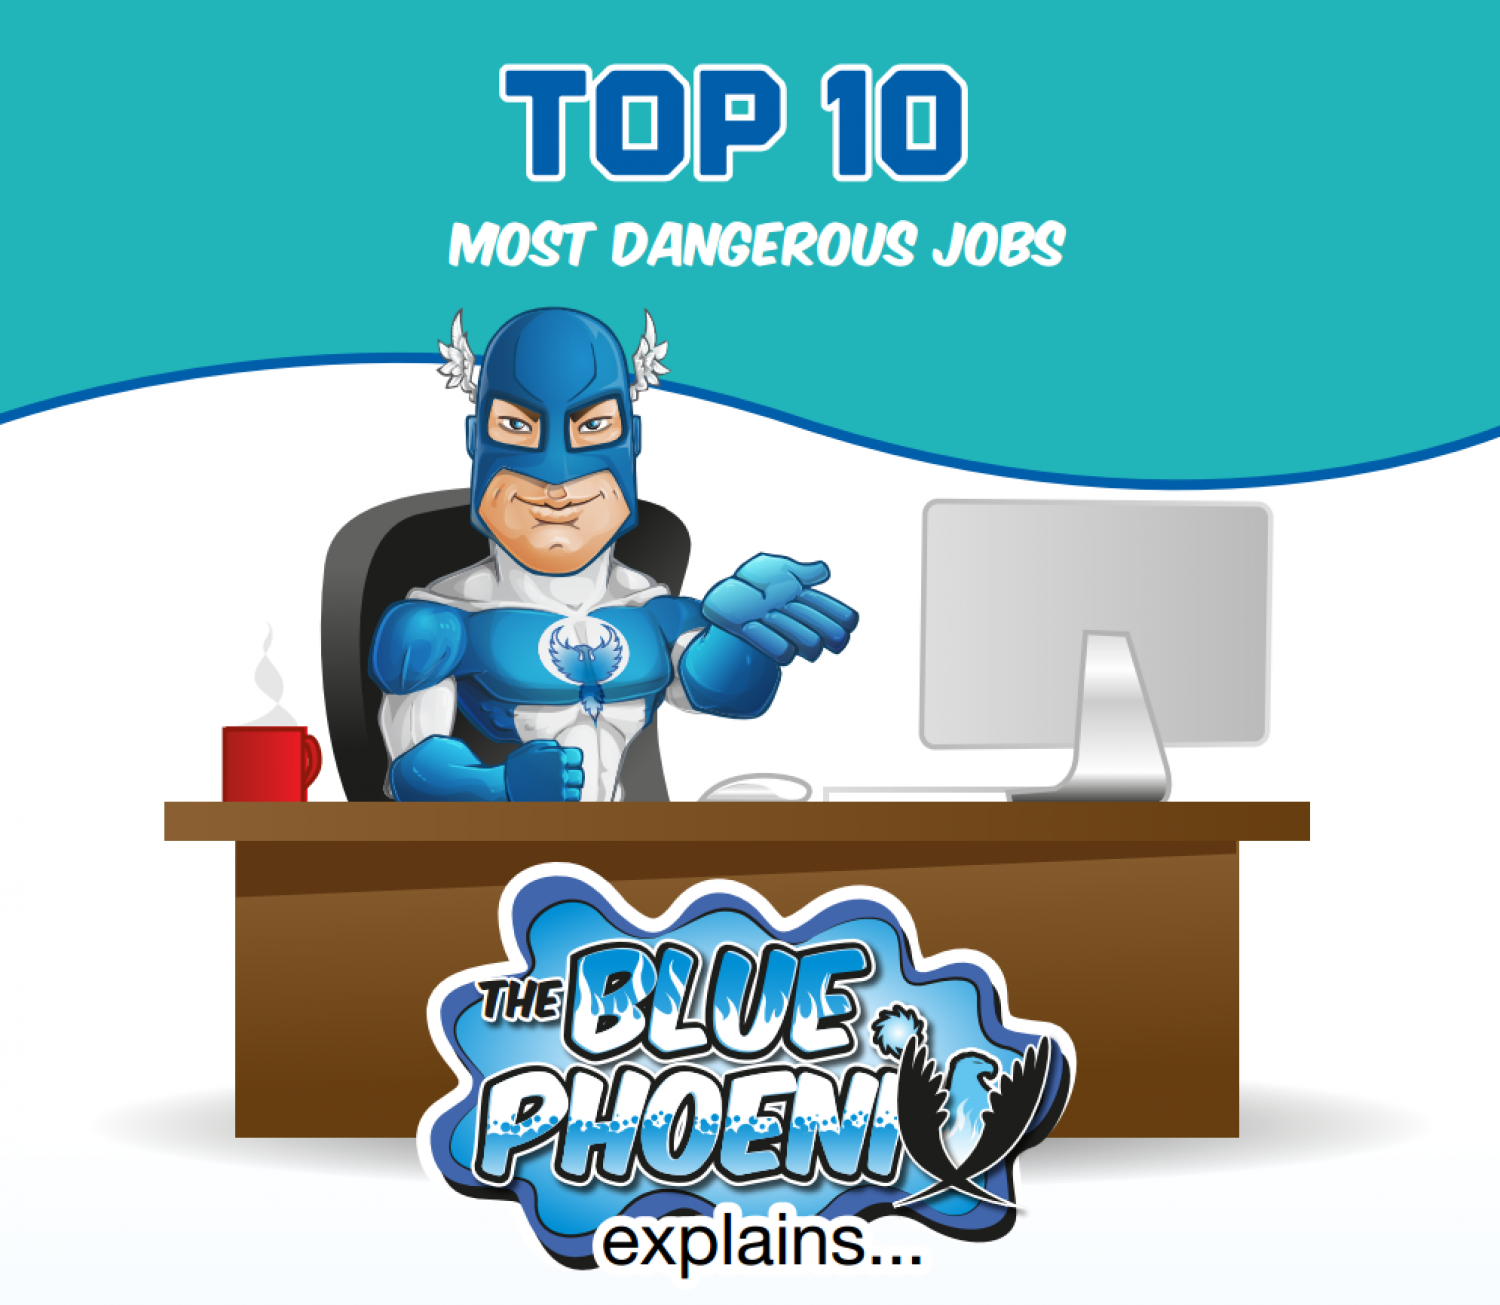 Top 10 Most Dangerous Jobs Infographic